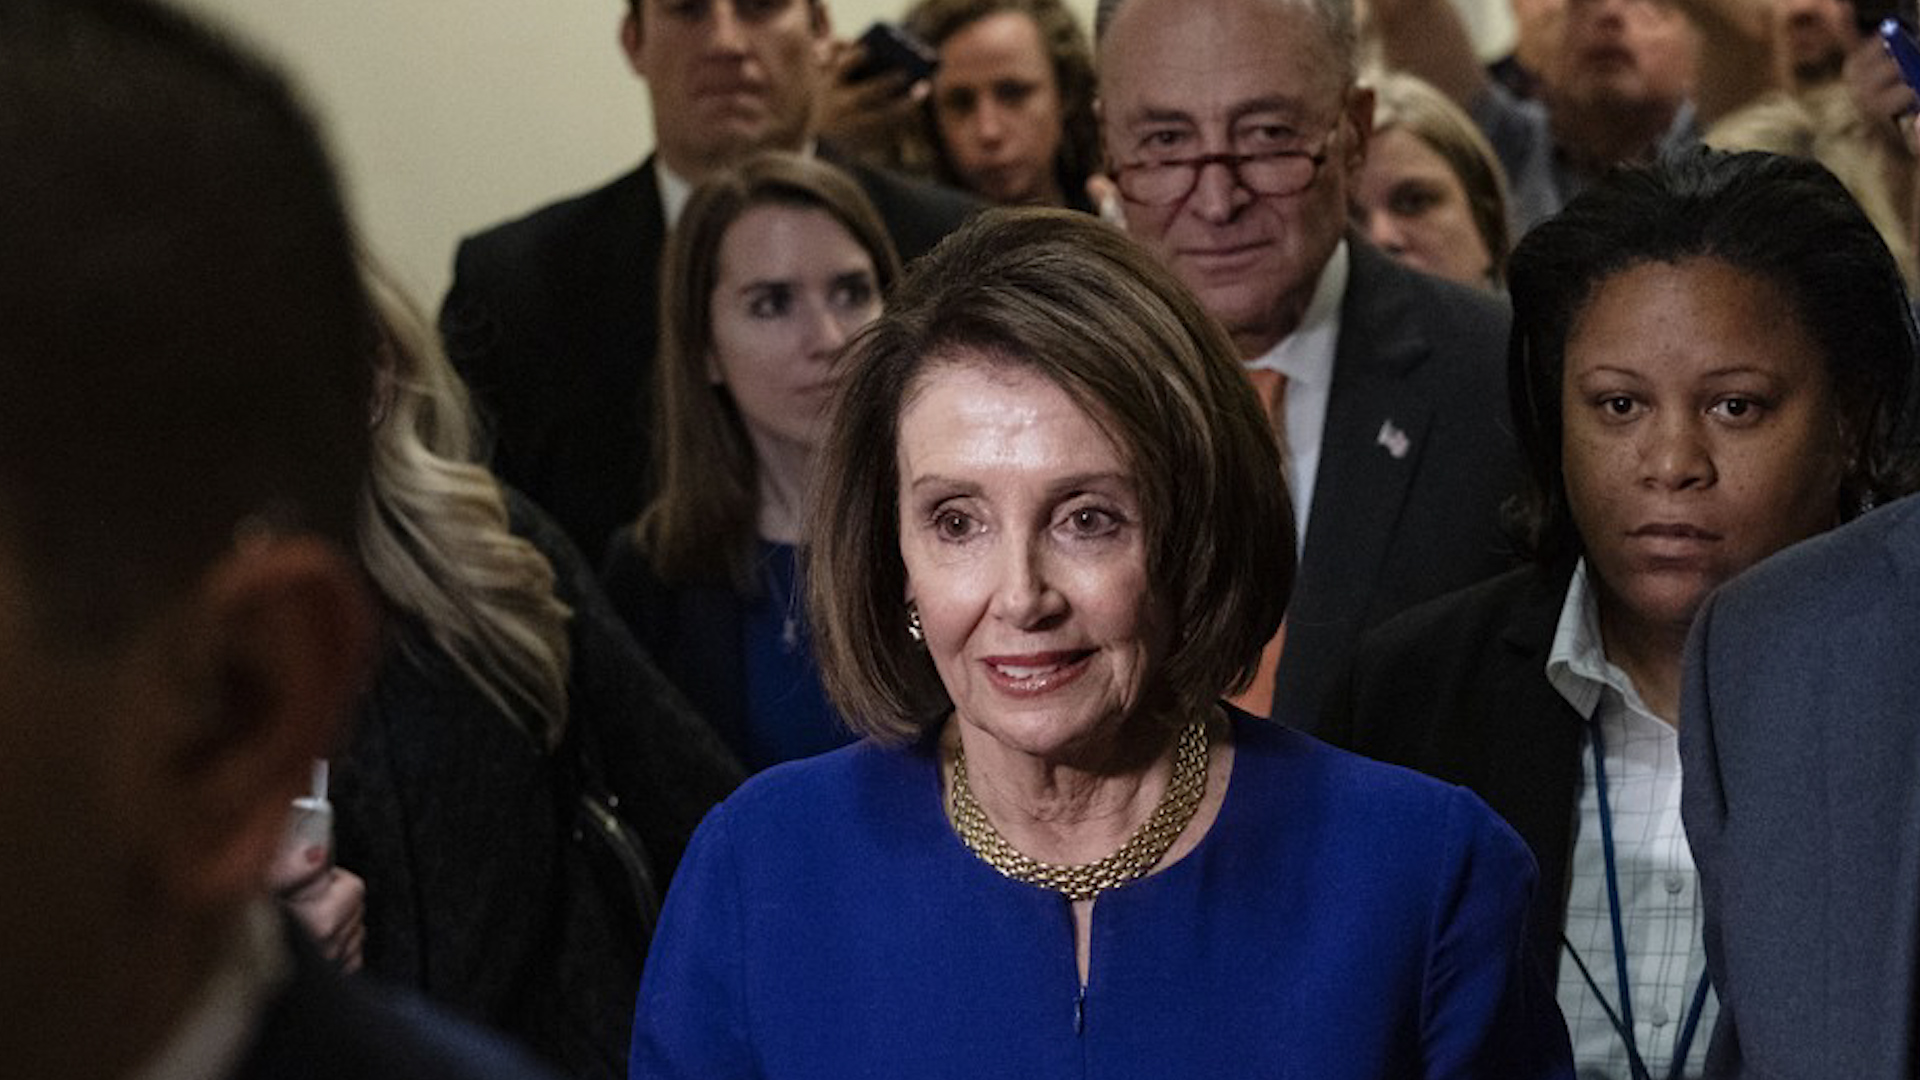 Outside Washington, Pelosi neither says nor hears much about Trump or impeachment